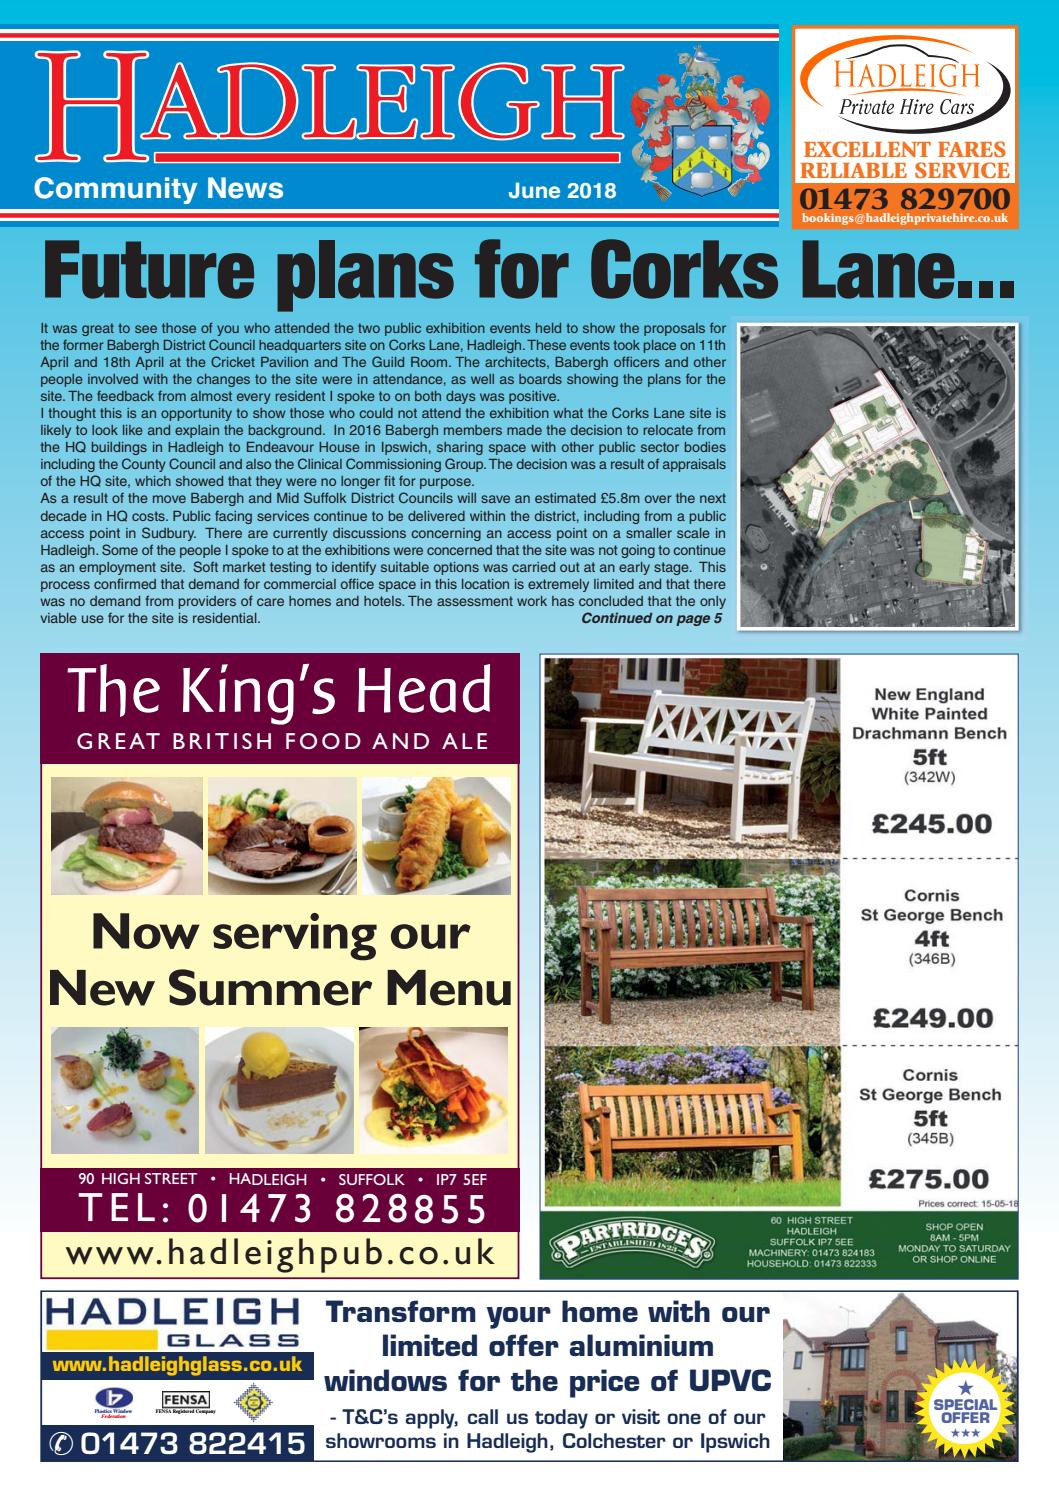 a5fdf8e7bb Hadleigh Community News, June 2018 by Keith Avis Printers - issuu